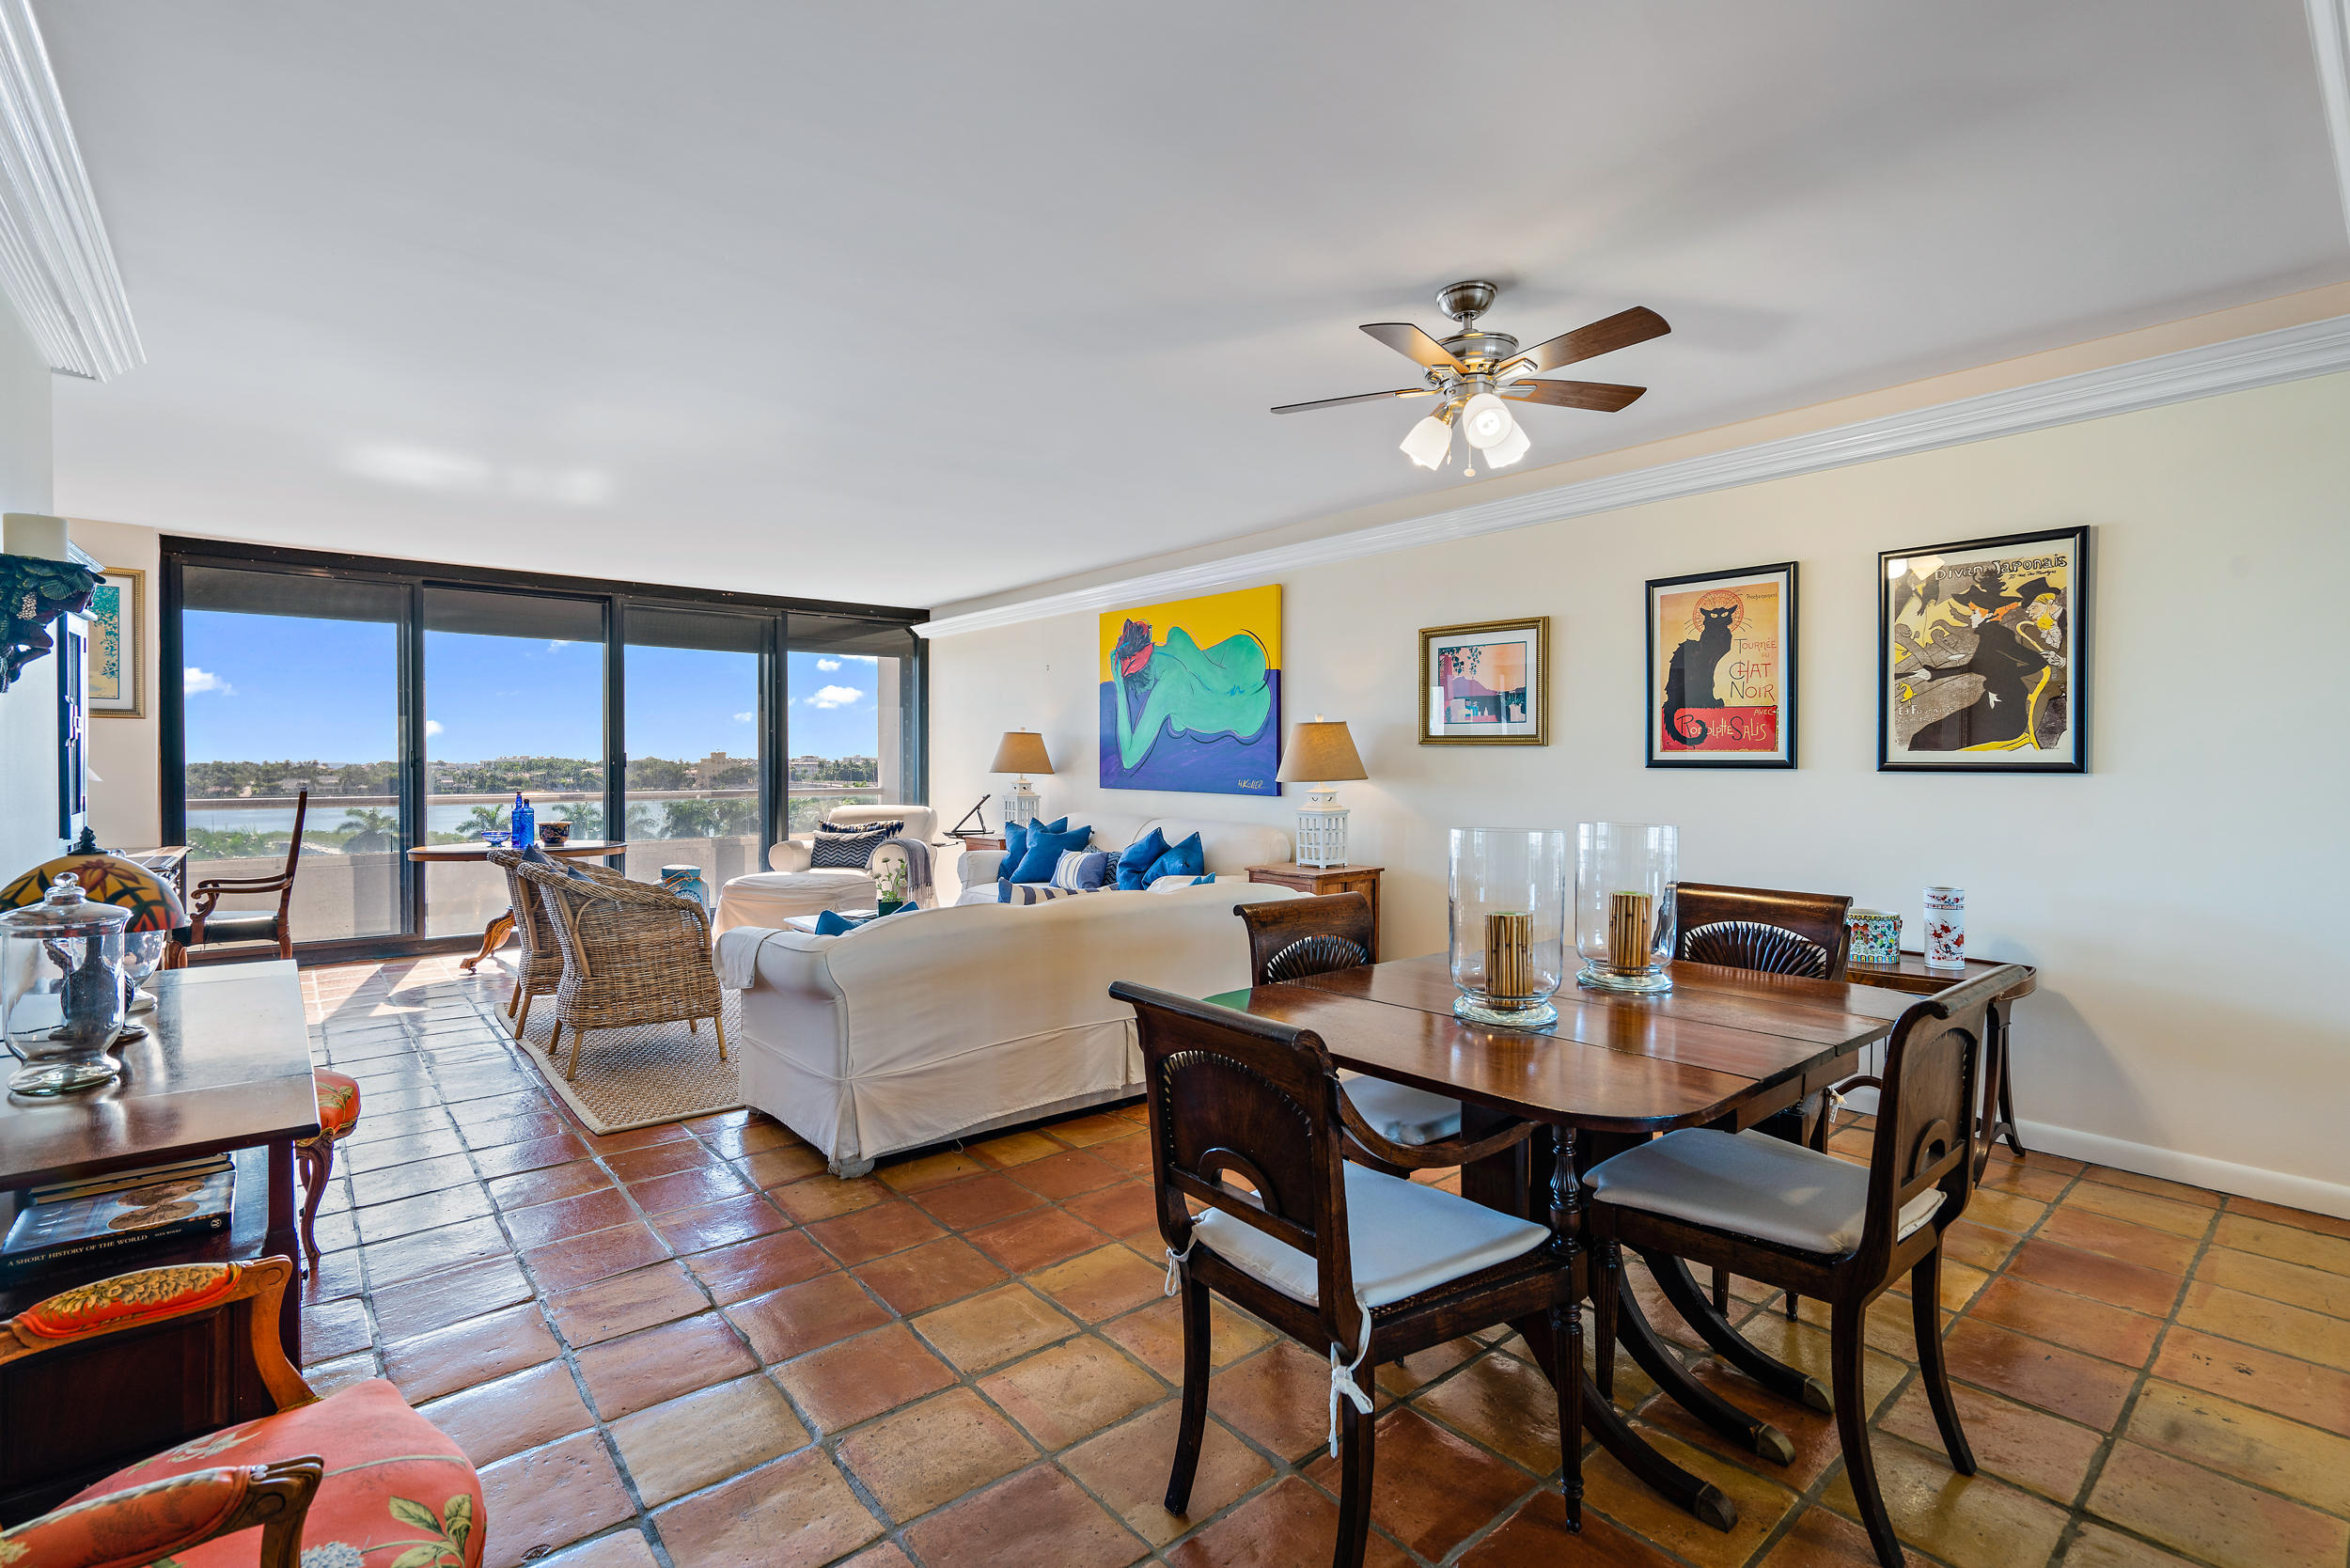 Home for sale in The Plaza Of The Palm Beaches West Palm Beach Florida